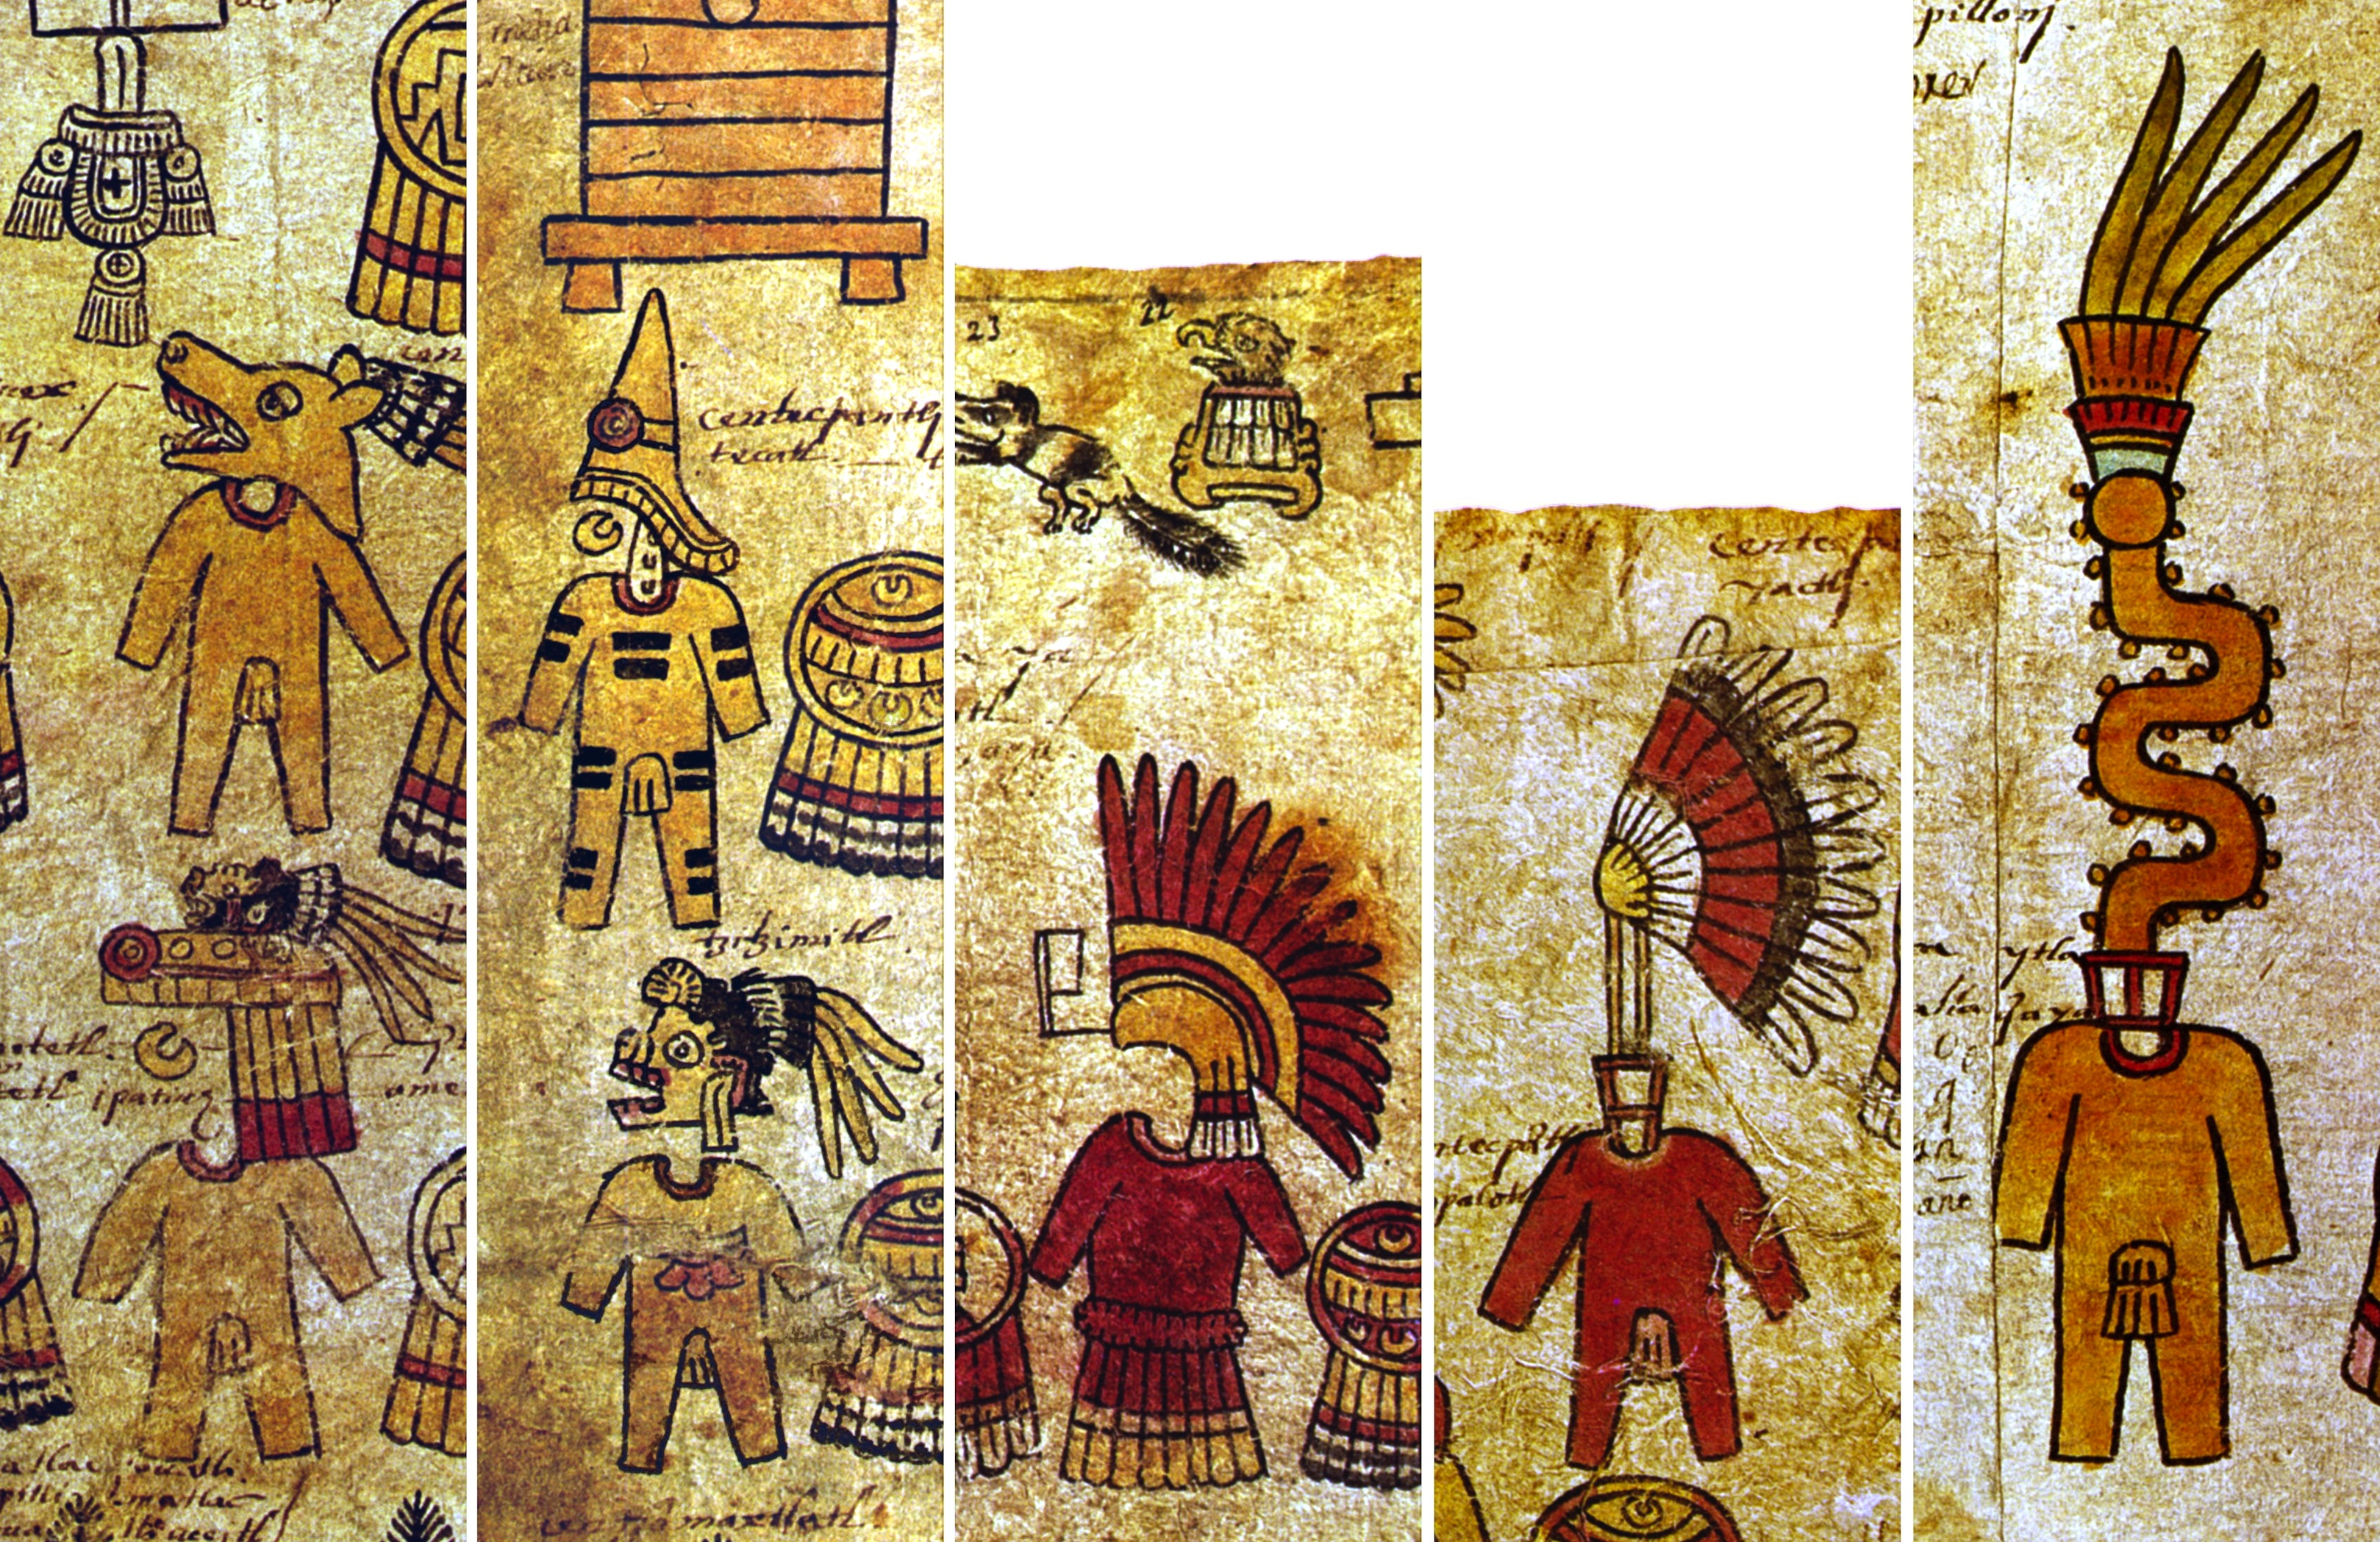 FIGURE 35. Additional styles of warrior costume the Matrícula de Tributos. From left to right, these are Coyote (top) and Canid Deity (bottom; note the Huaxtec nose ornament as well as the dog's head on top of the headdress); Death (bottom, with the Huaxtec style above); Quetzal Feather (red version); Twisted Feather (note the red support rack); and Umbilical Cord (note the red support rack). All examples are from folio 3v except the Umbilical Cord, which is from 12r.